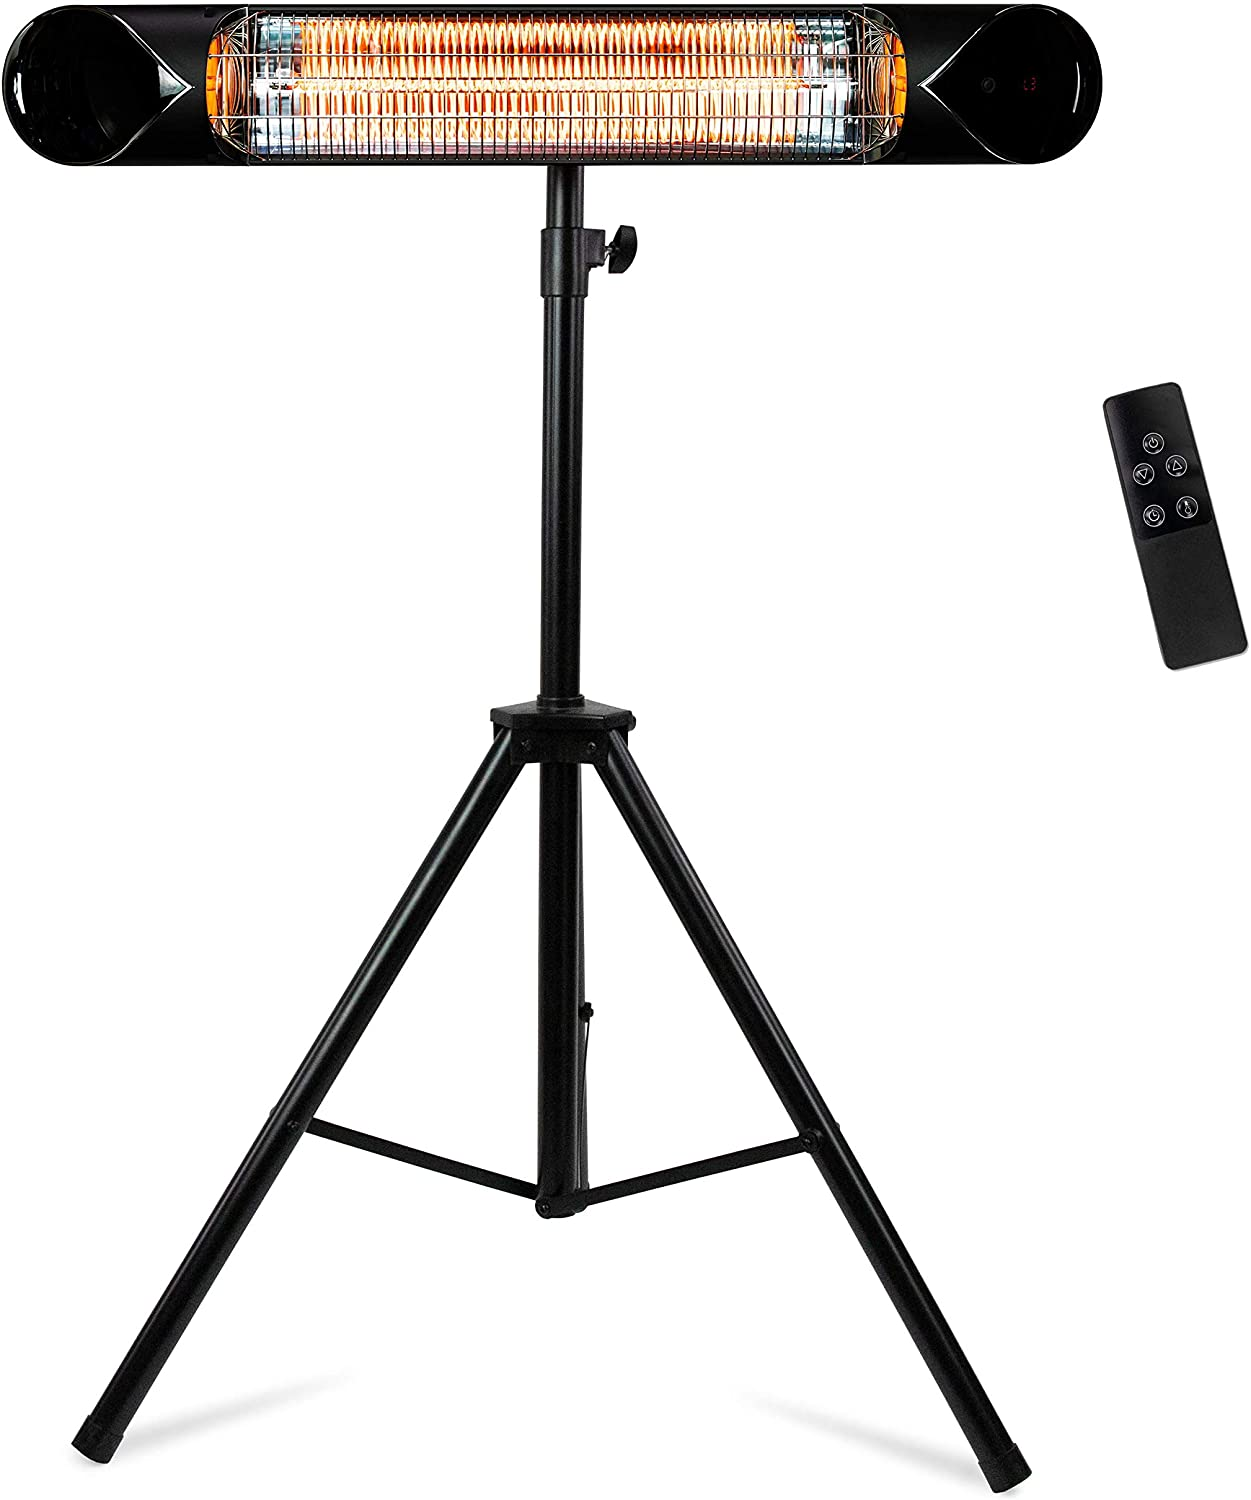 trustech infrared patio space heater